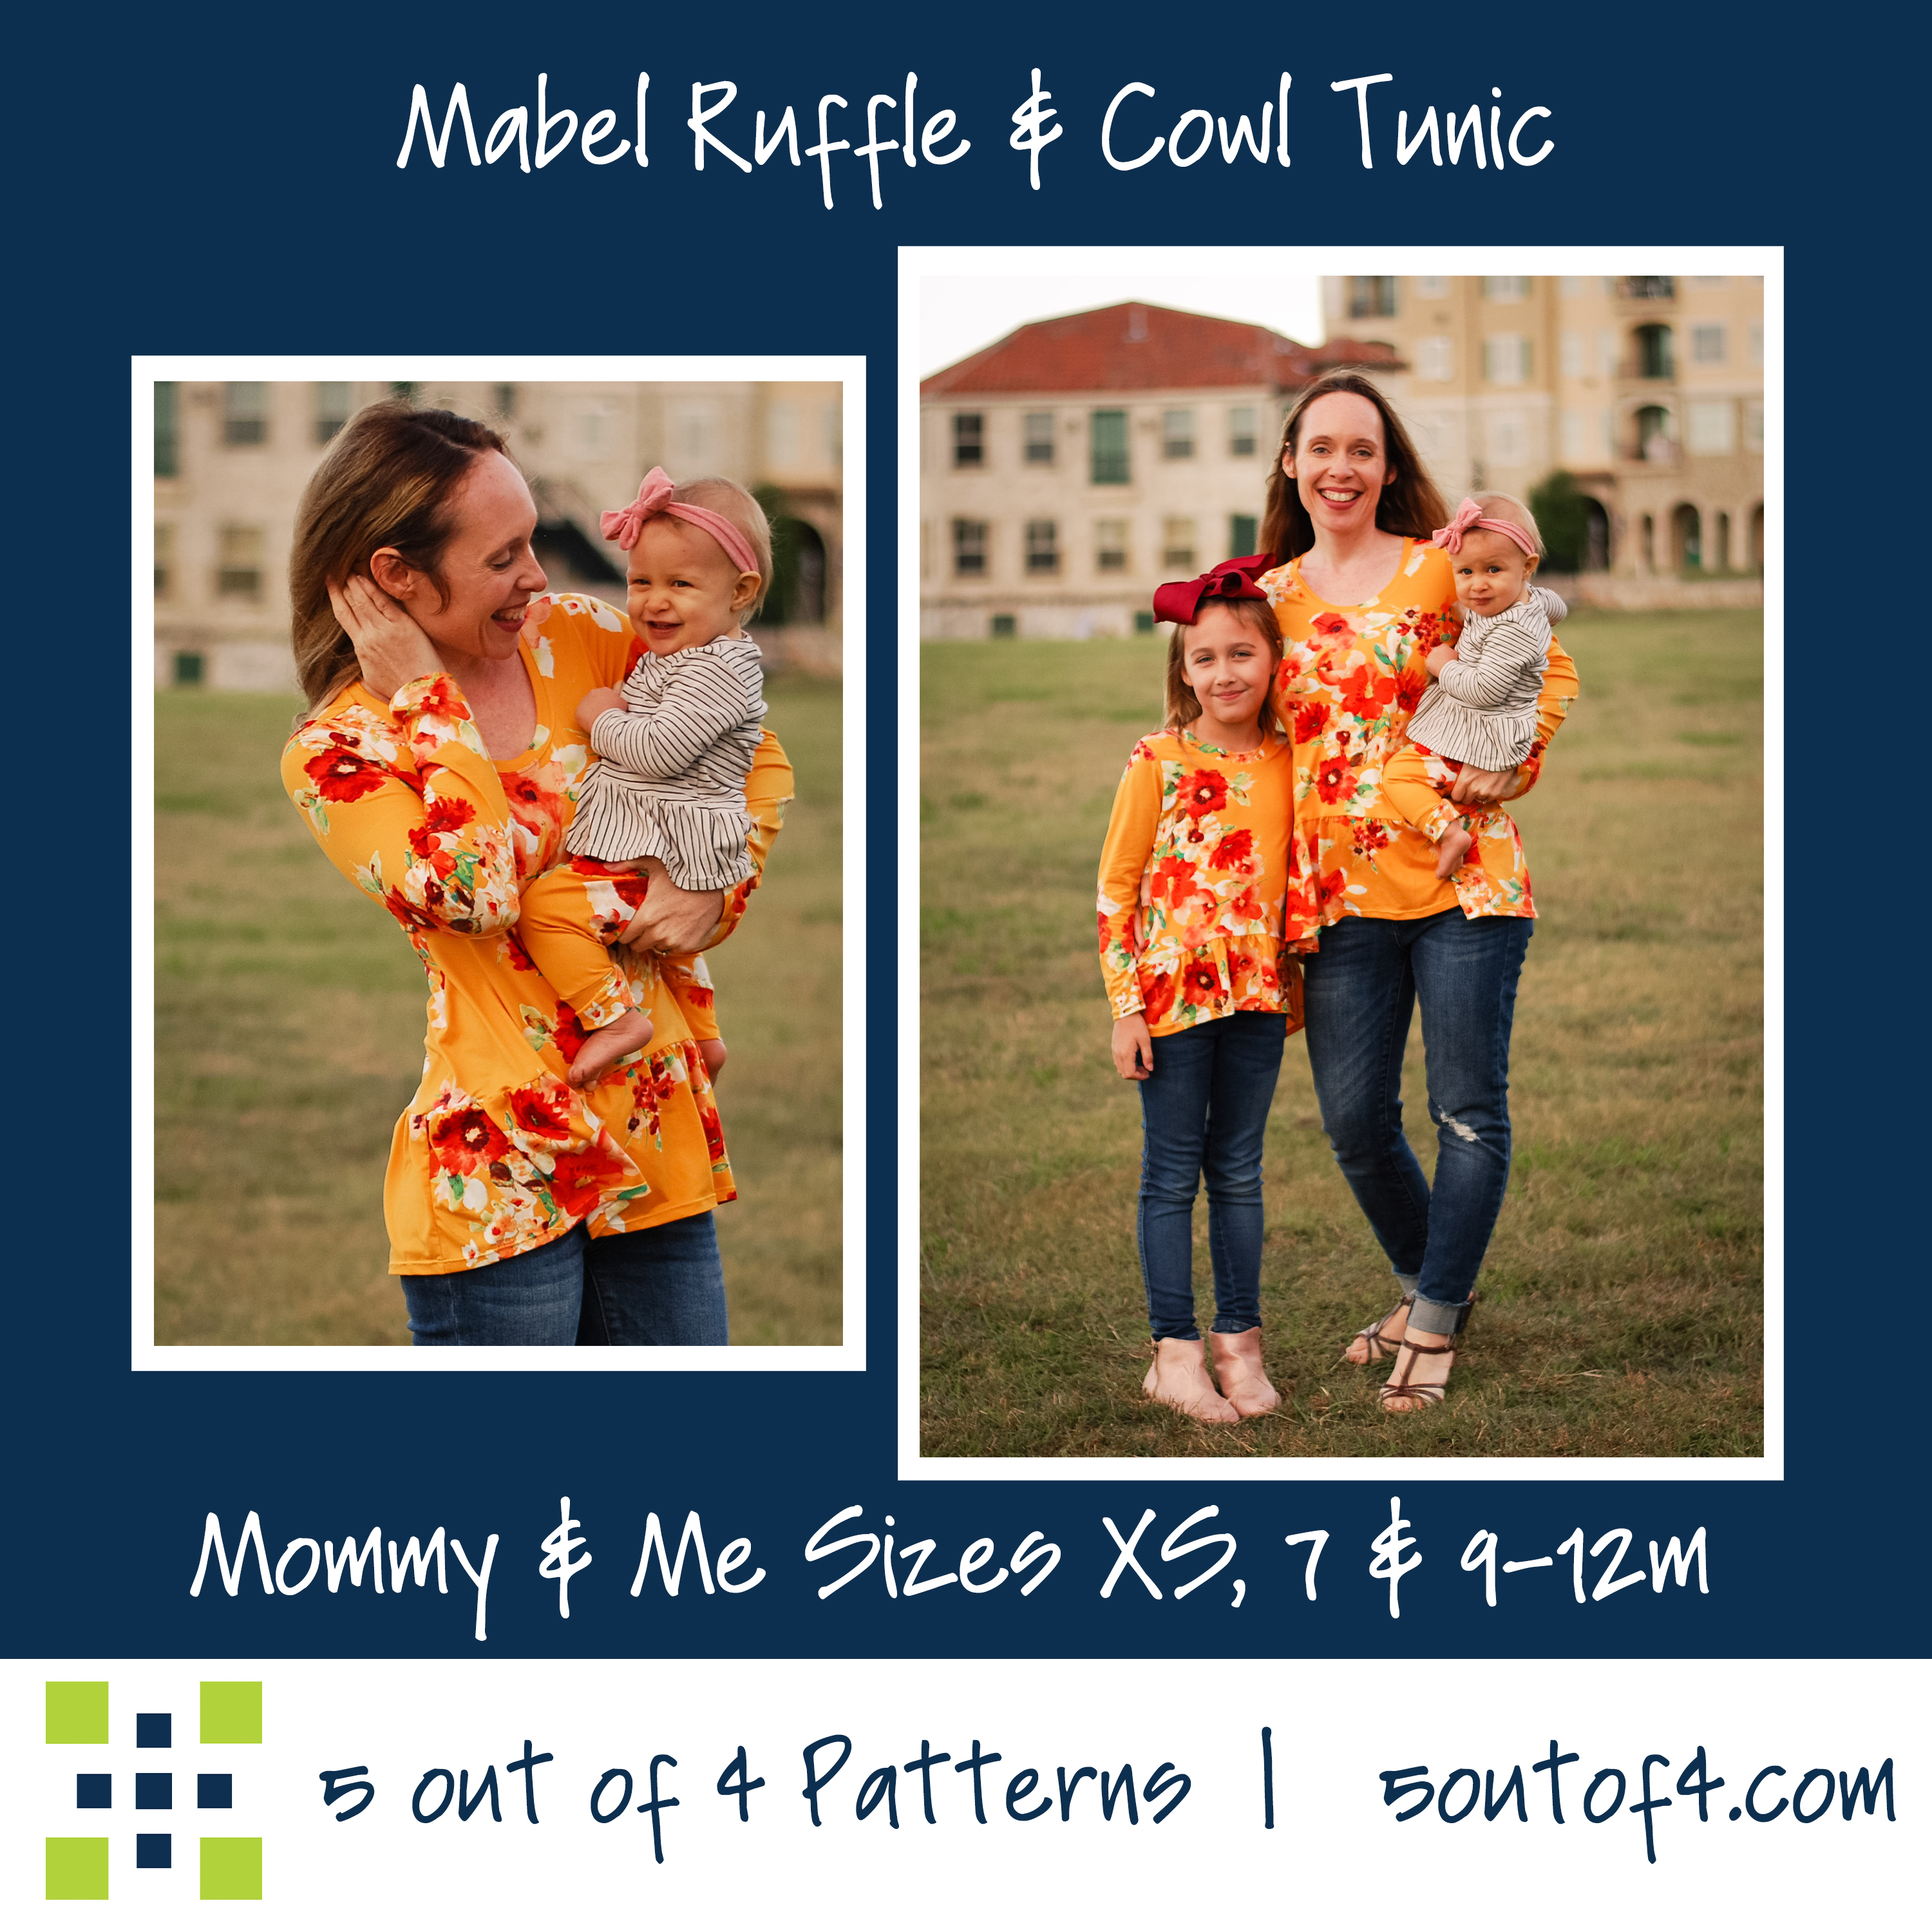 Mommy and Me Ruffle and Cowl Tunic Sewing Pattern Release and Sale by 5 out of 4 Sewing